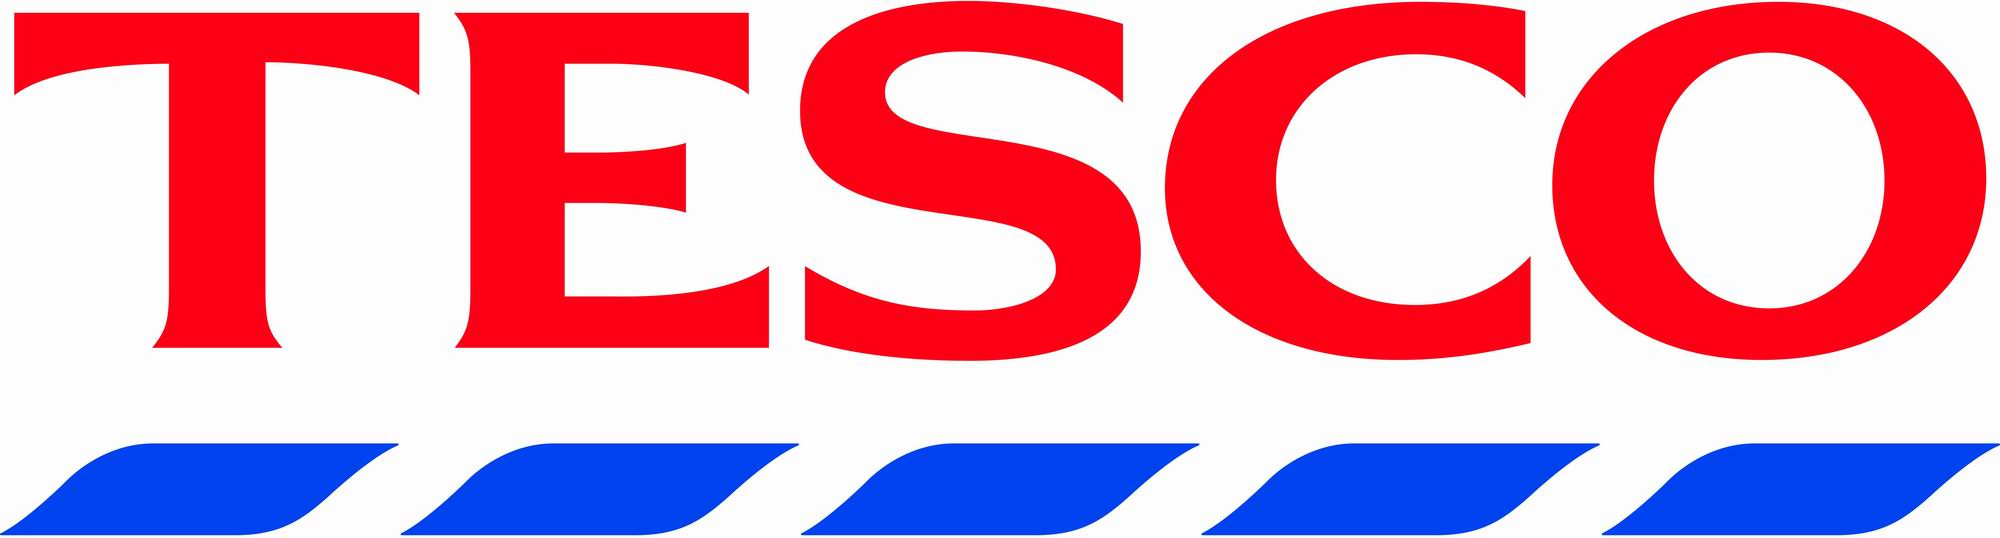 Tesco said it is committed but not yet ready to build in Stanley